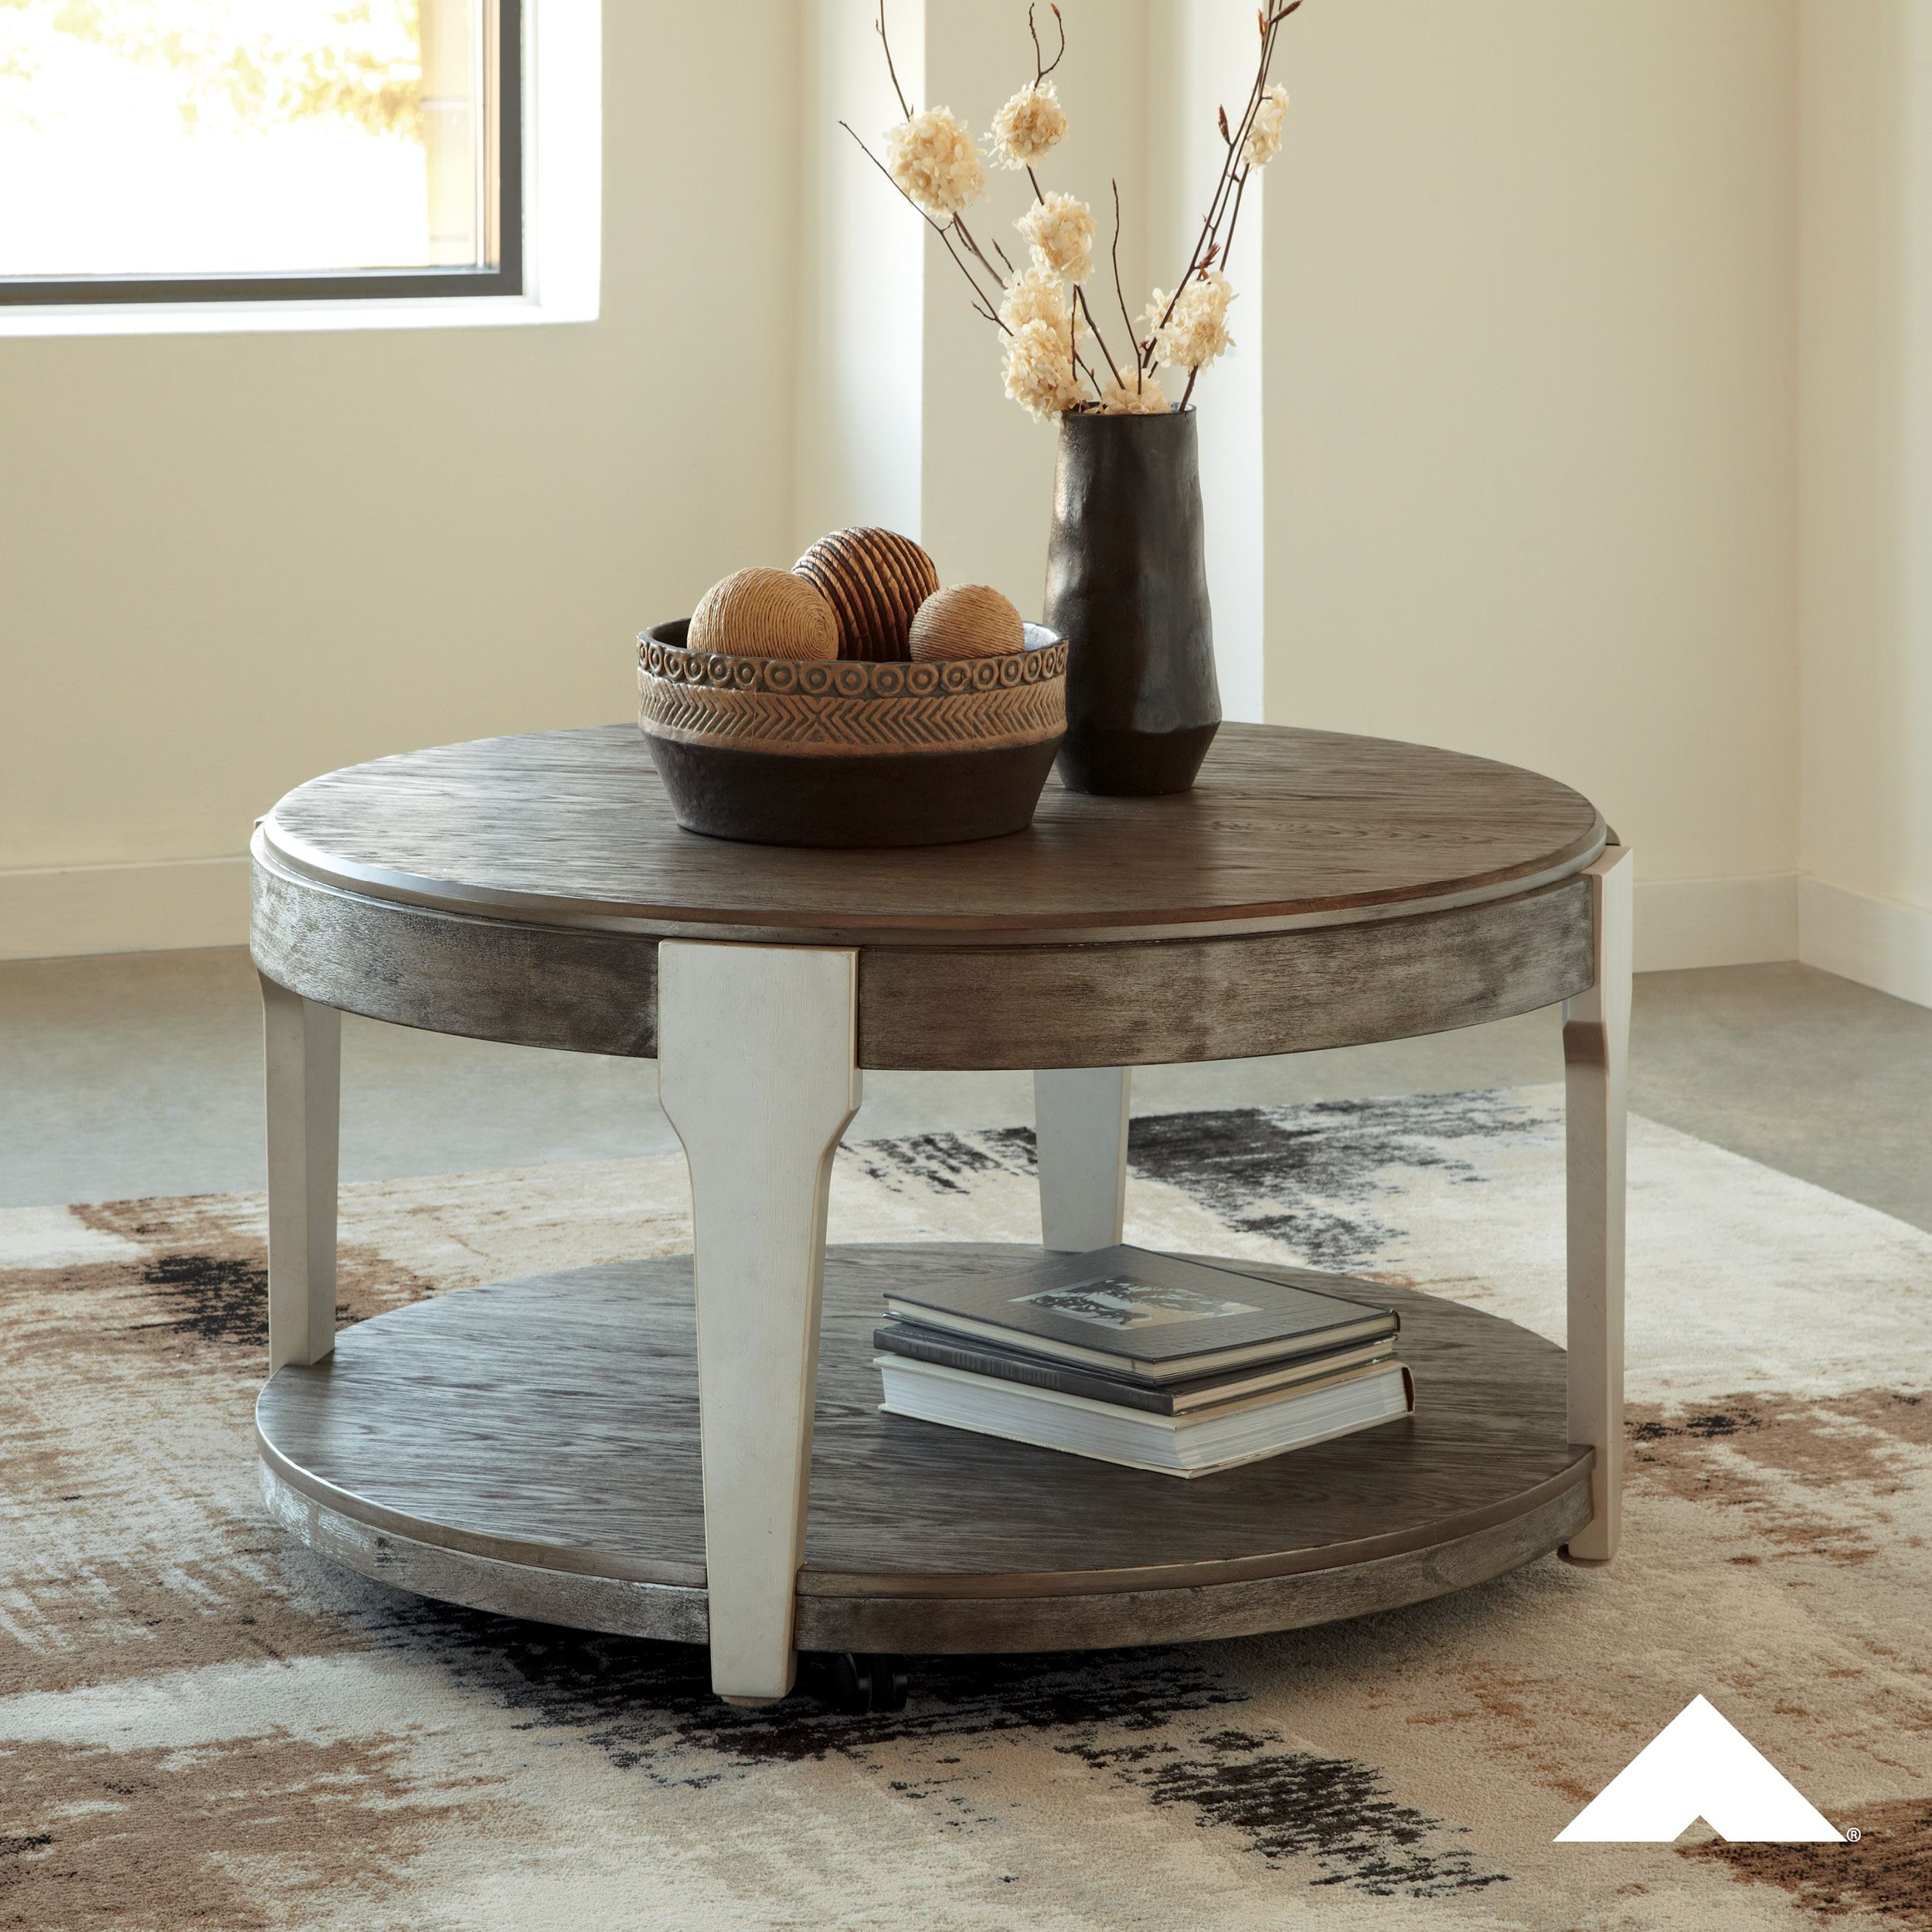 Brenzington Grayish Brown And Silver Round Cocktail Table By Ashley Furniture Ashleyfurniture F Round Cocktail Tables Coffee Table Coffee Table With Shelf